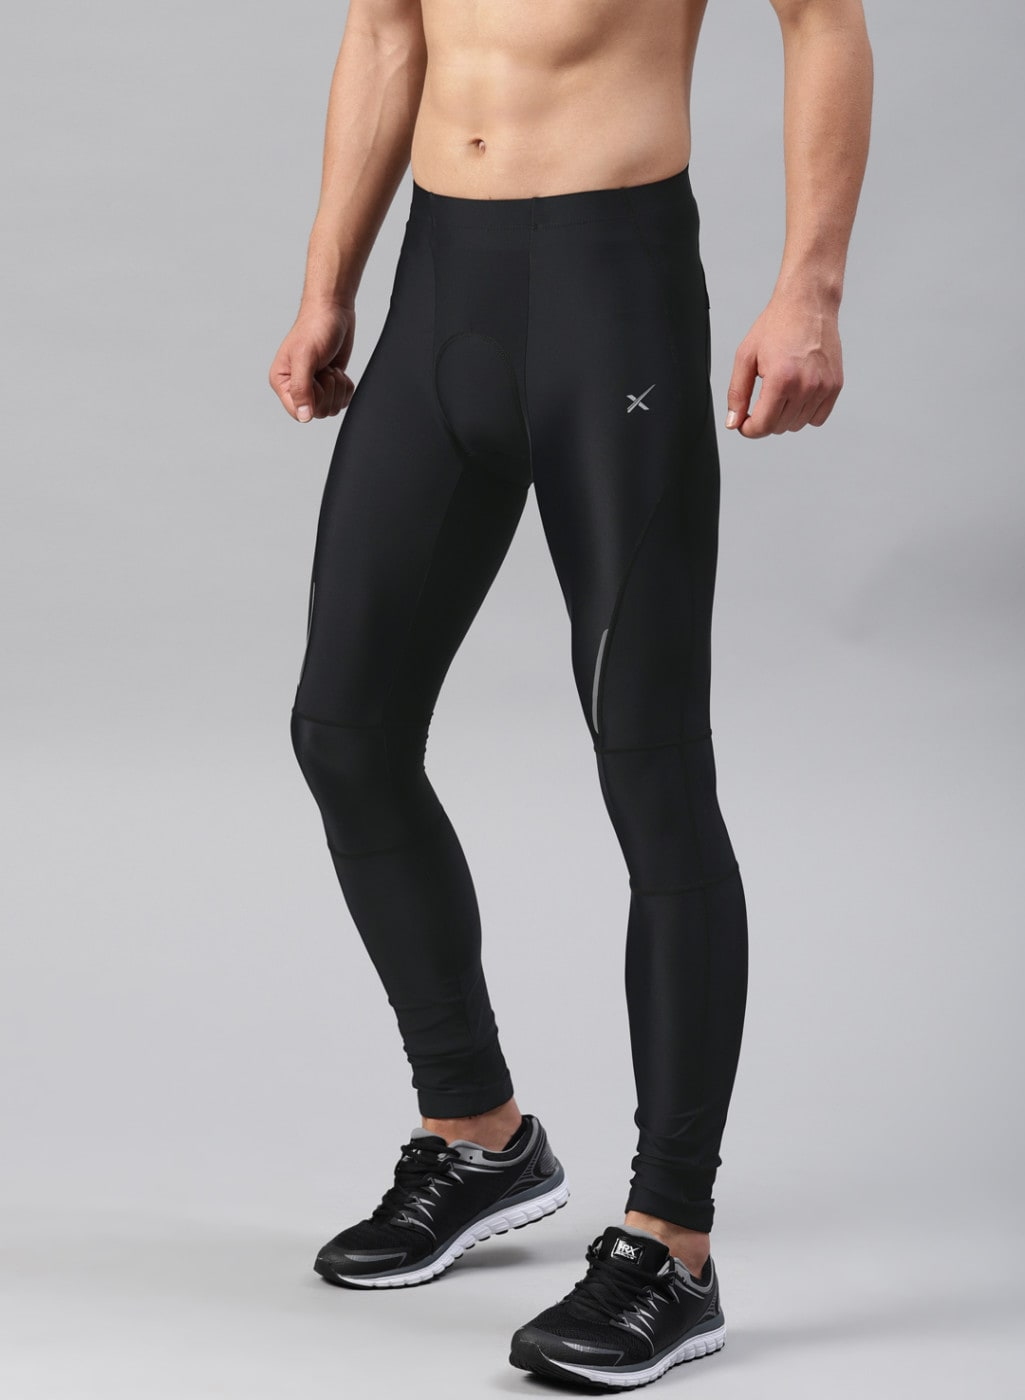 a998ccfd6d Men Tracker Tights - Buy Men Tracker Tights online in India - Jabong